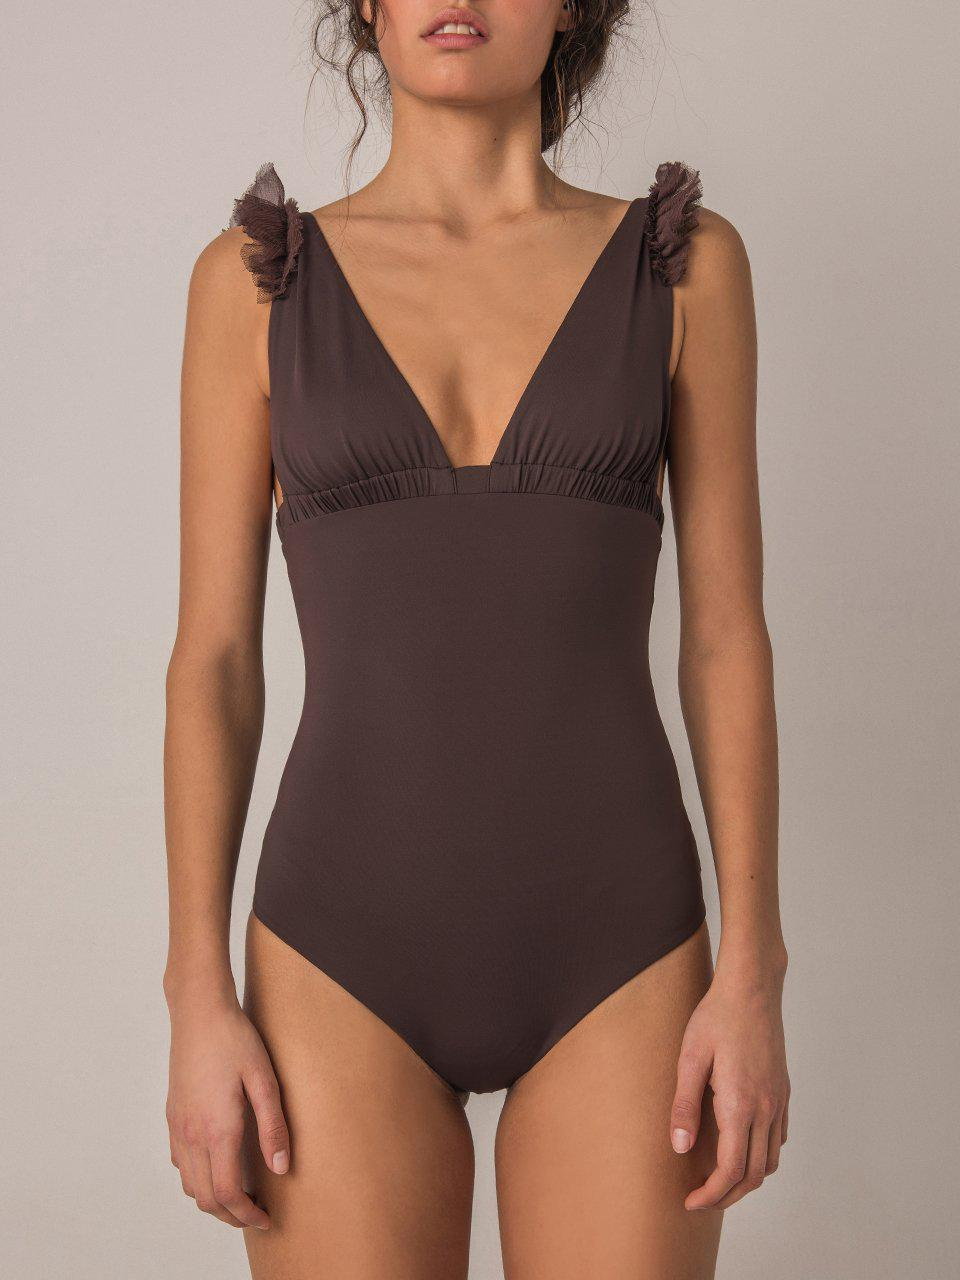 Silky Wings Vintage One-Piece